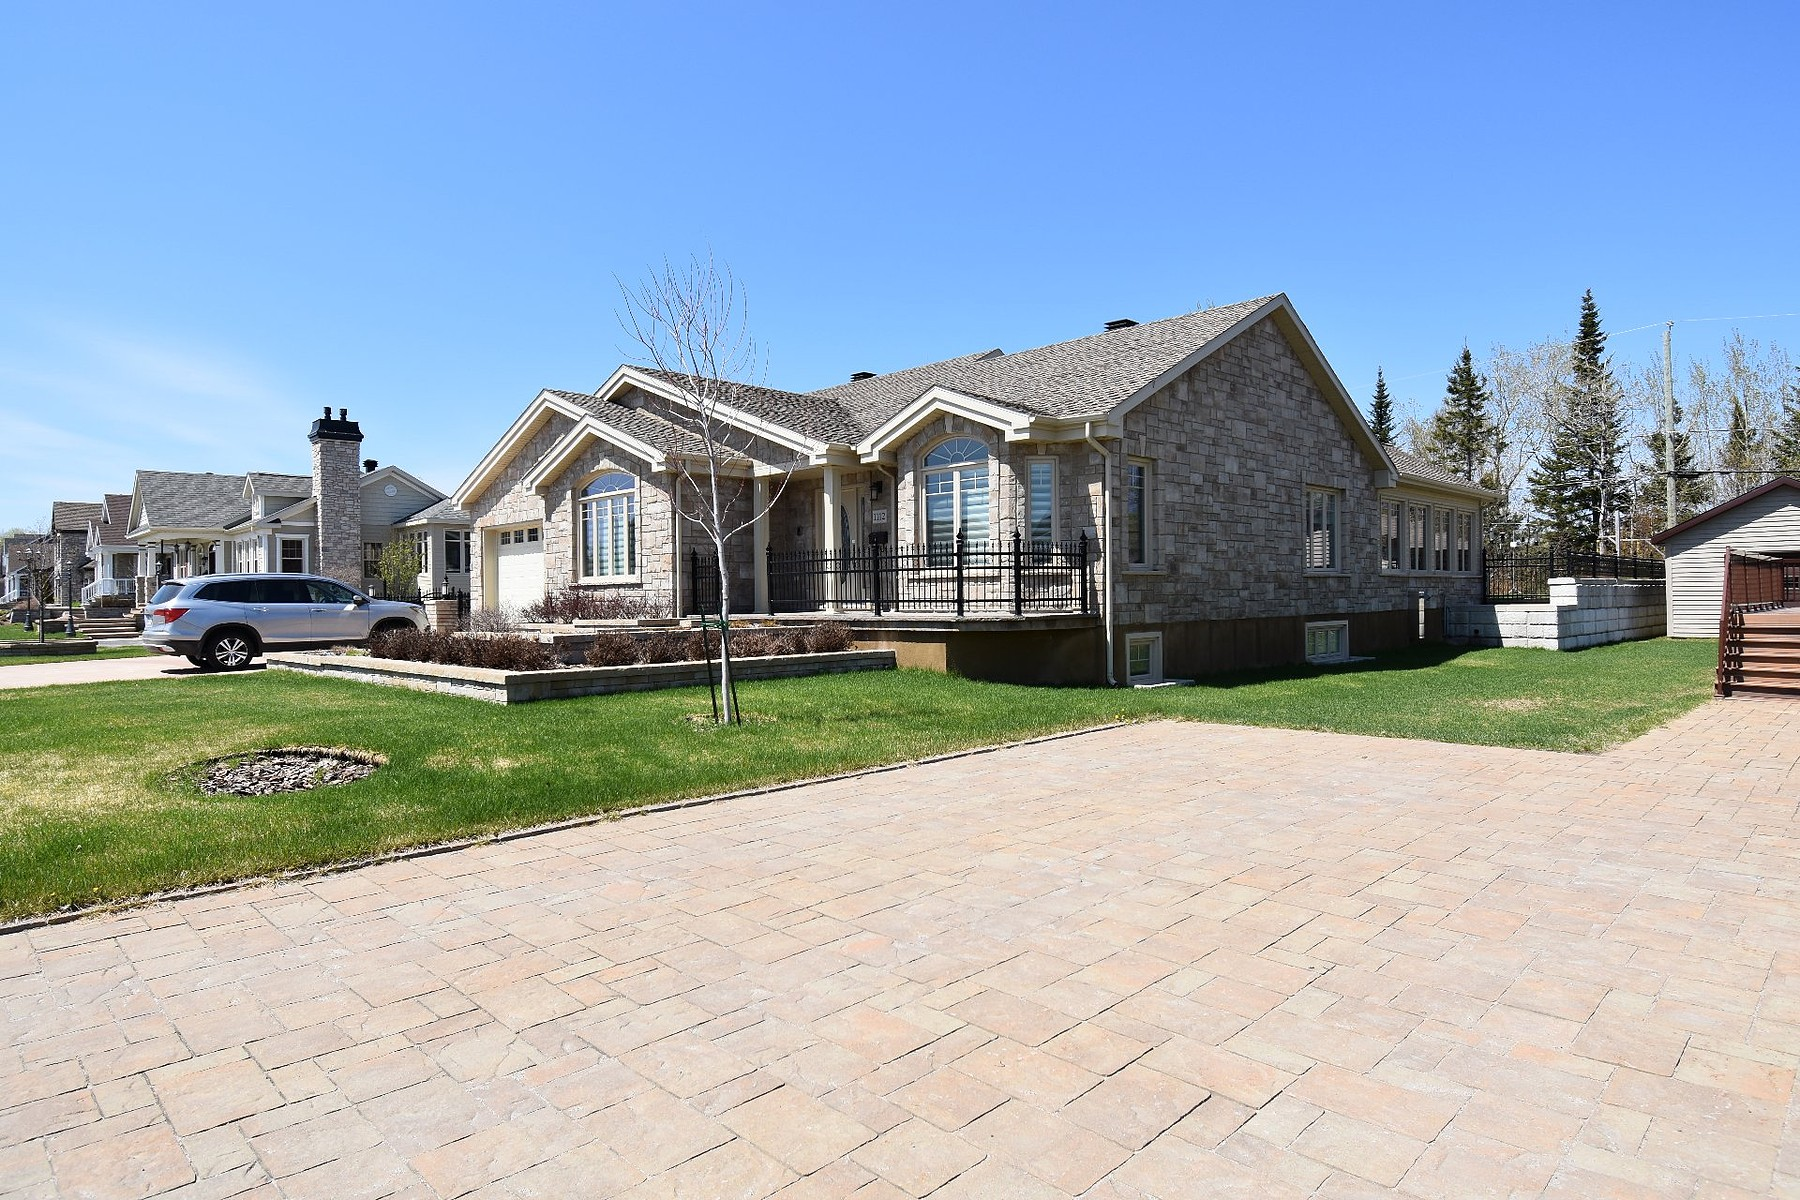 Single Family Homes for Sale at Baie-Comeau, Côte-Nord 1112 Rue Louis-Amiot Baie-Comeau, Quebec G5C0A2 Canada